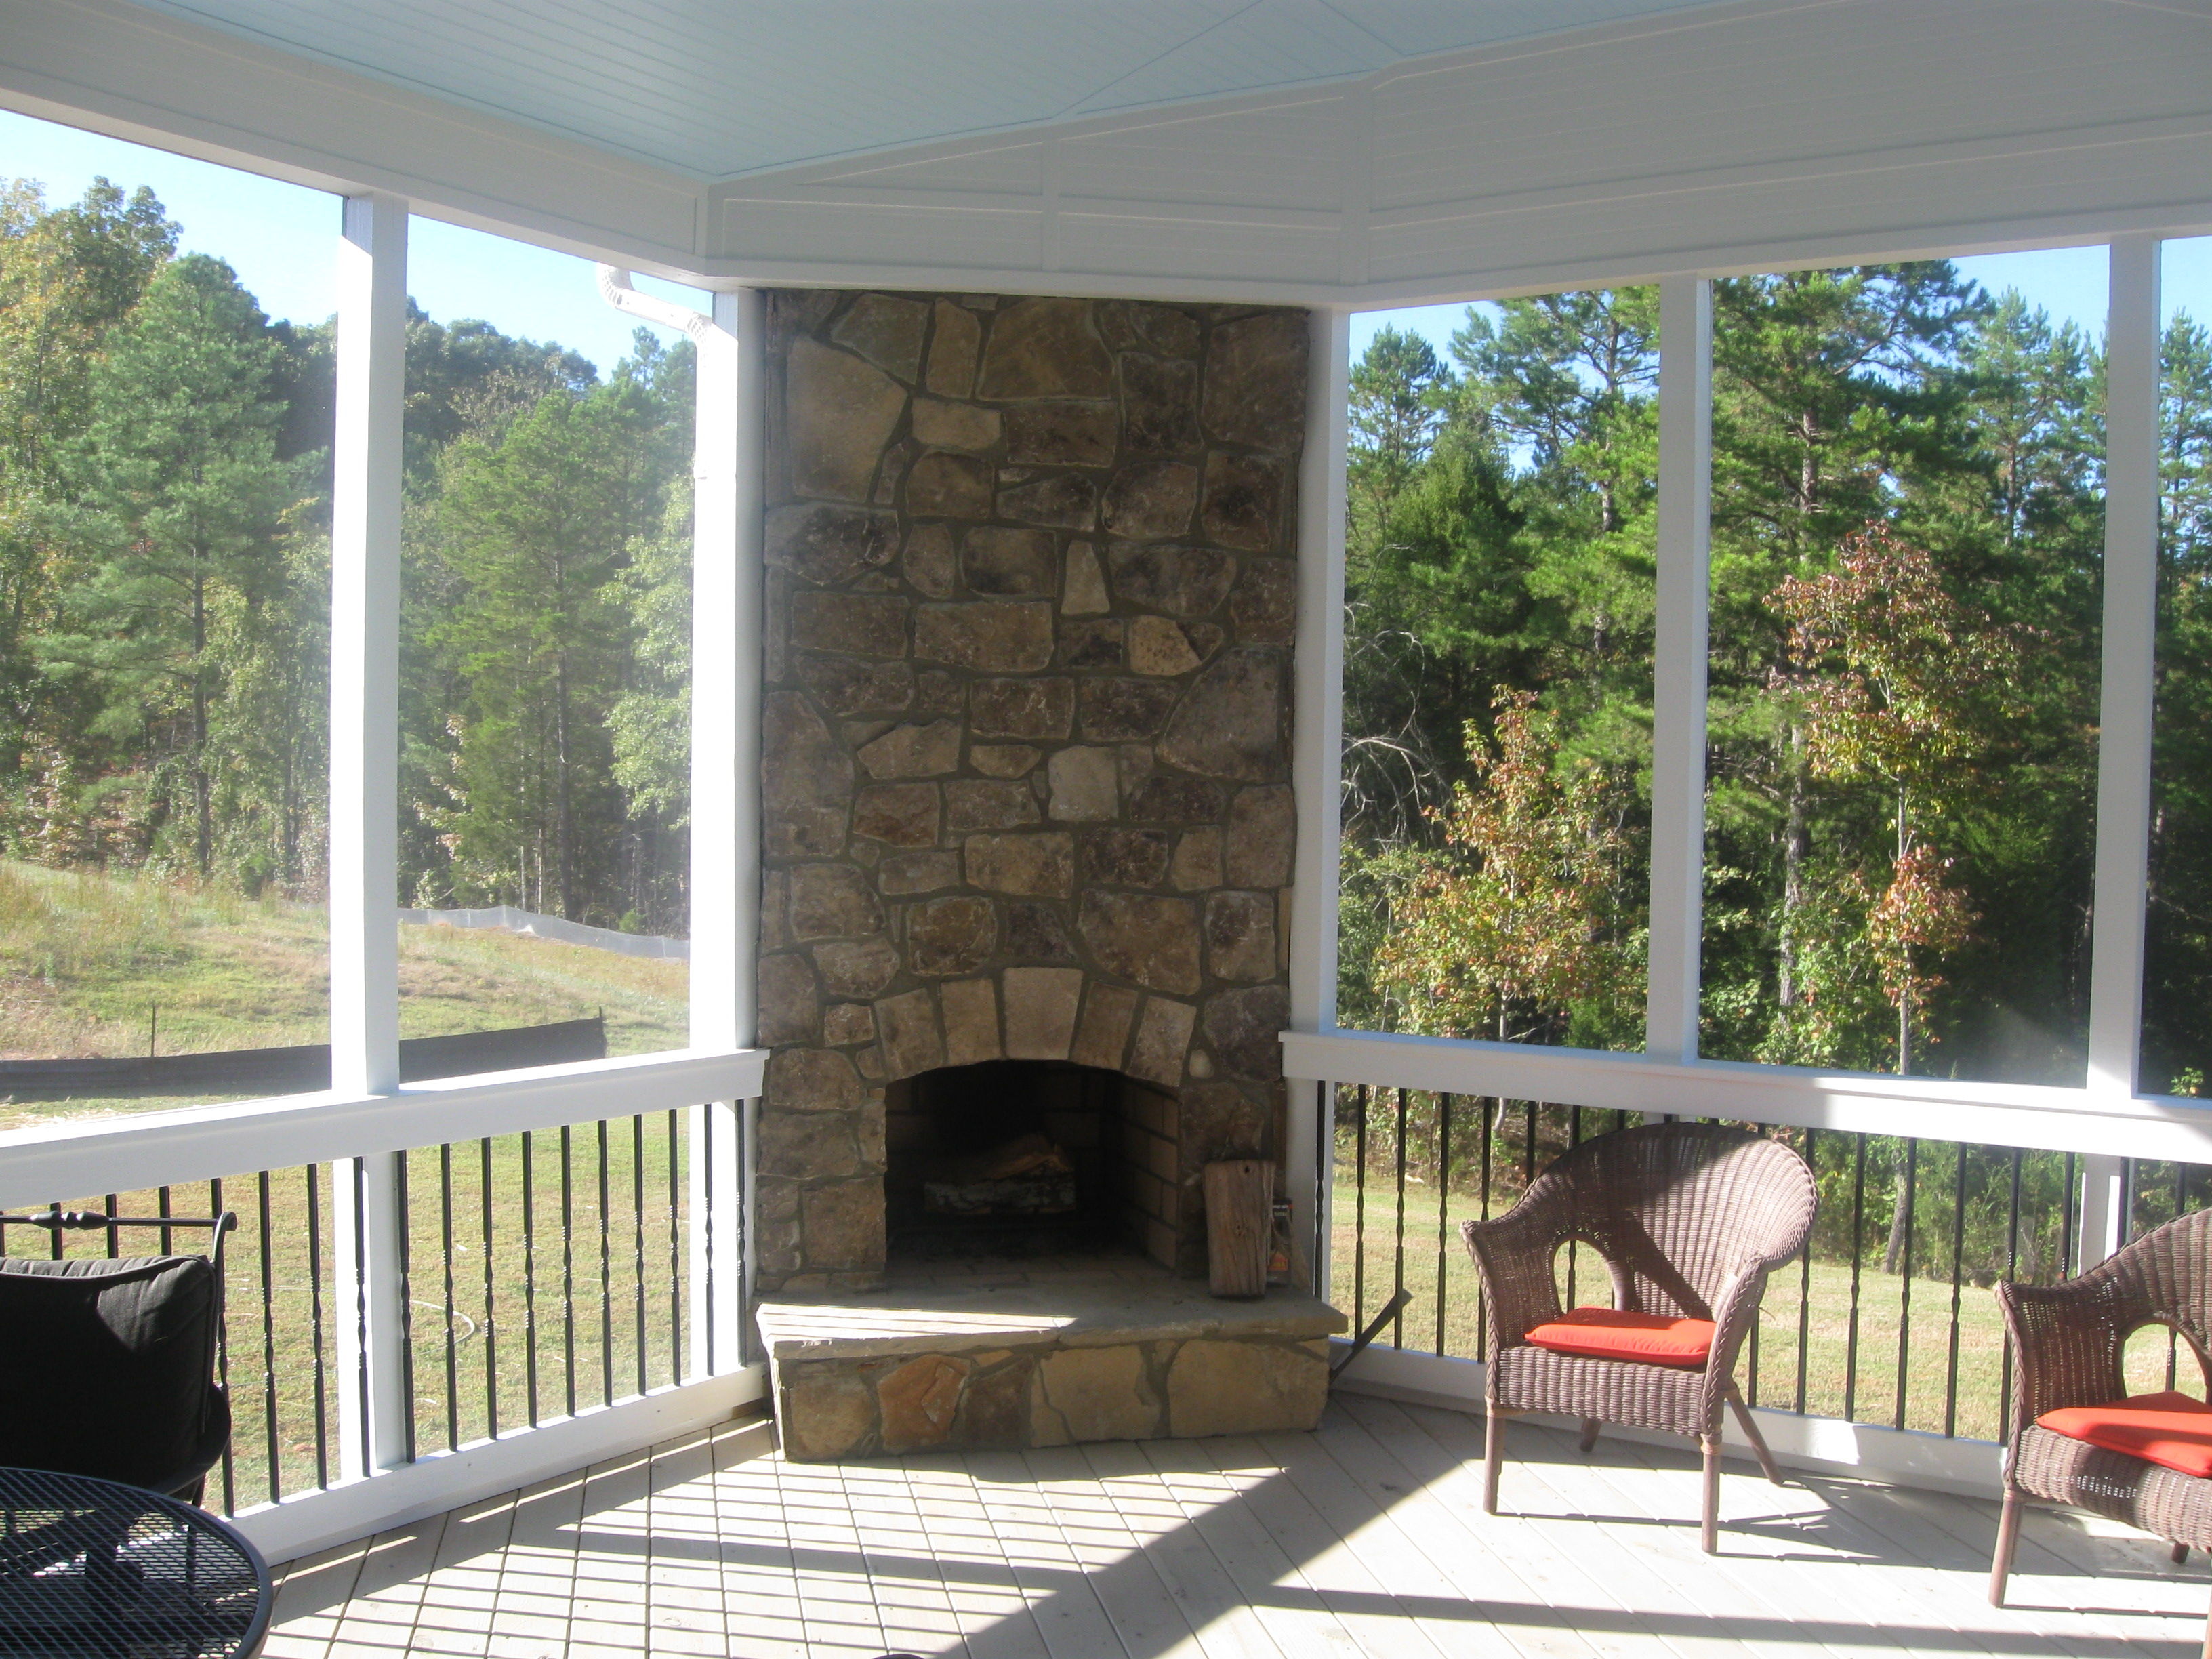 Winterizing your outdoor living space winterizing your for Outdoor room with fireplace